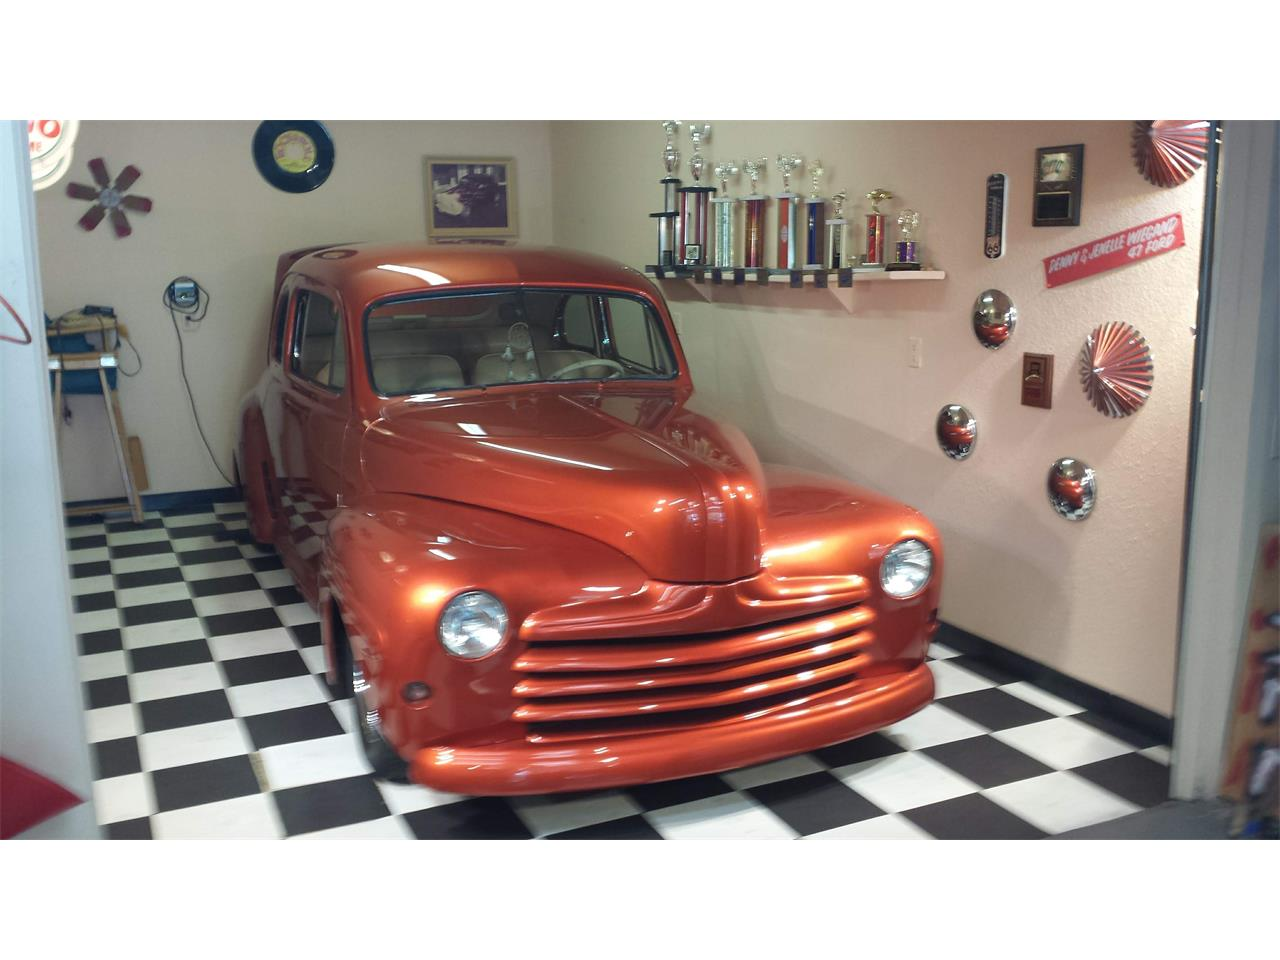 1947 Ford Coupe for sale in Dubuque, IA – photo 5